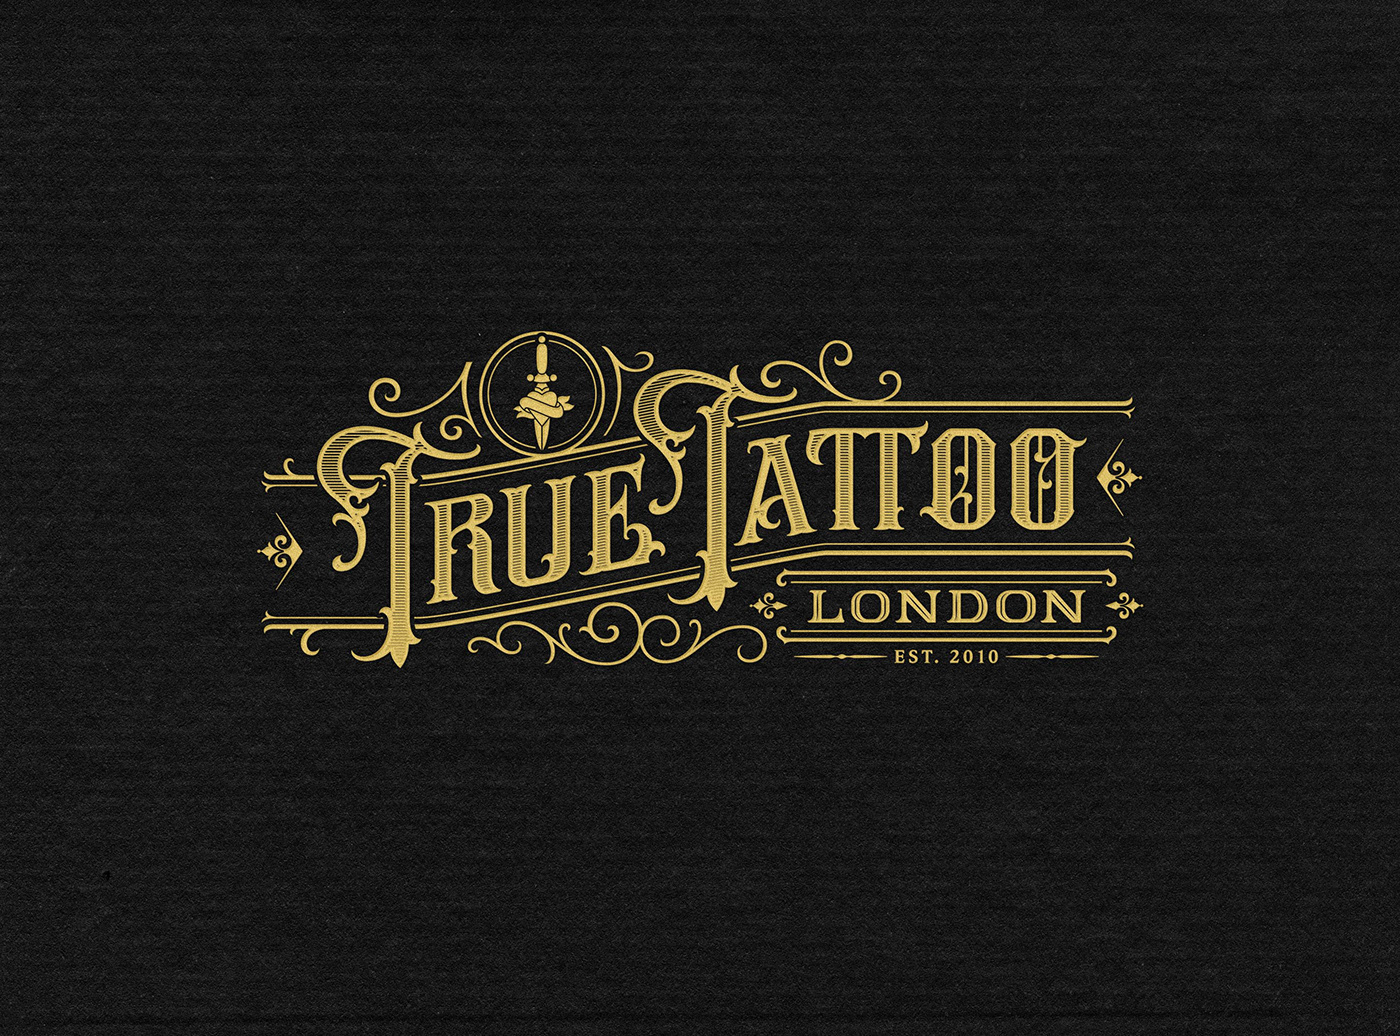 logo,Logotype,typography  ,Calligraphy  ,lettering,HAND LETTERING,Icon,mark,identity,letters